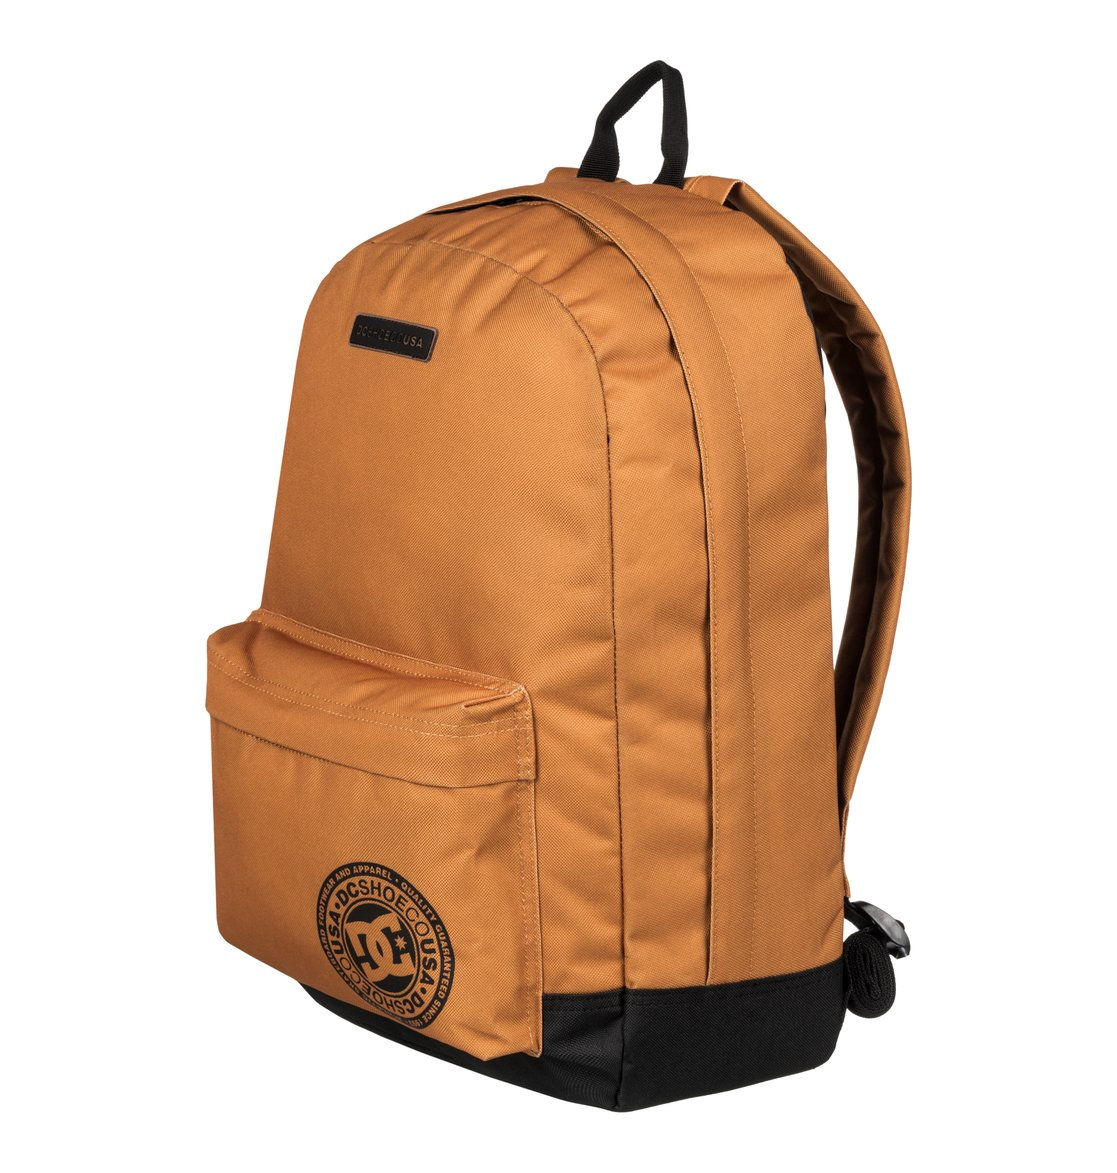 DC-Shoes-Backstack-18-5L-Sac-a-dos-taille-moyenne-pour-Homme-EDYBP03180 miniature 13